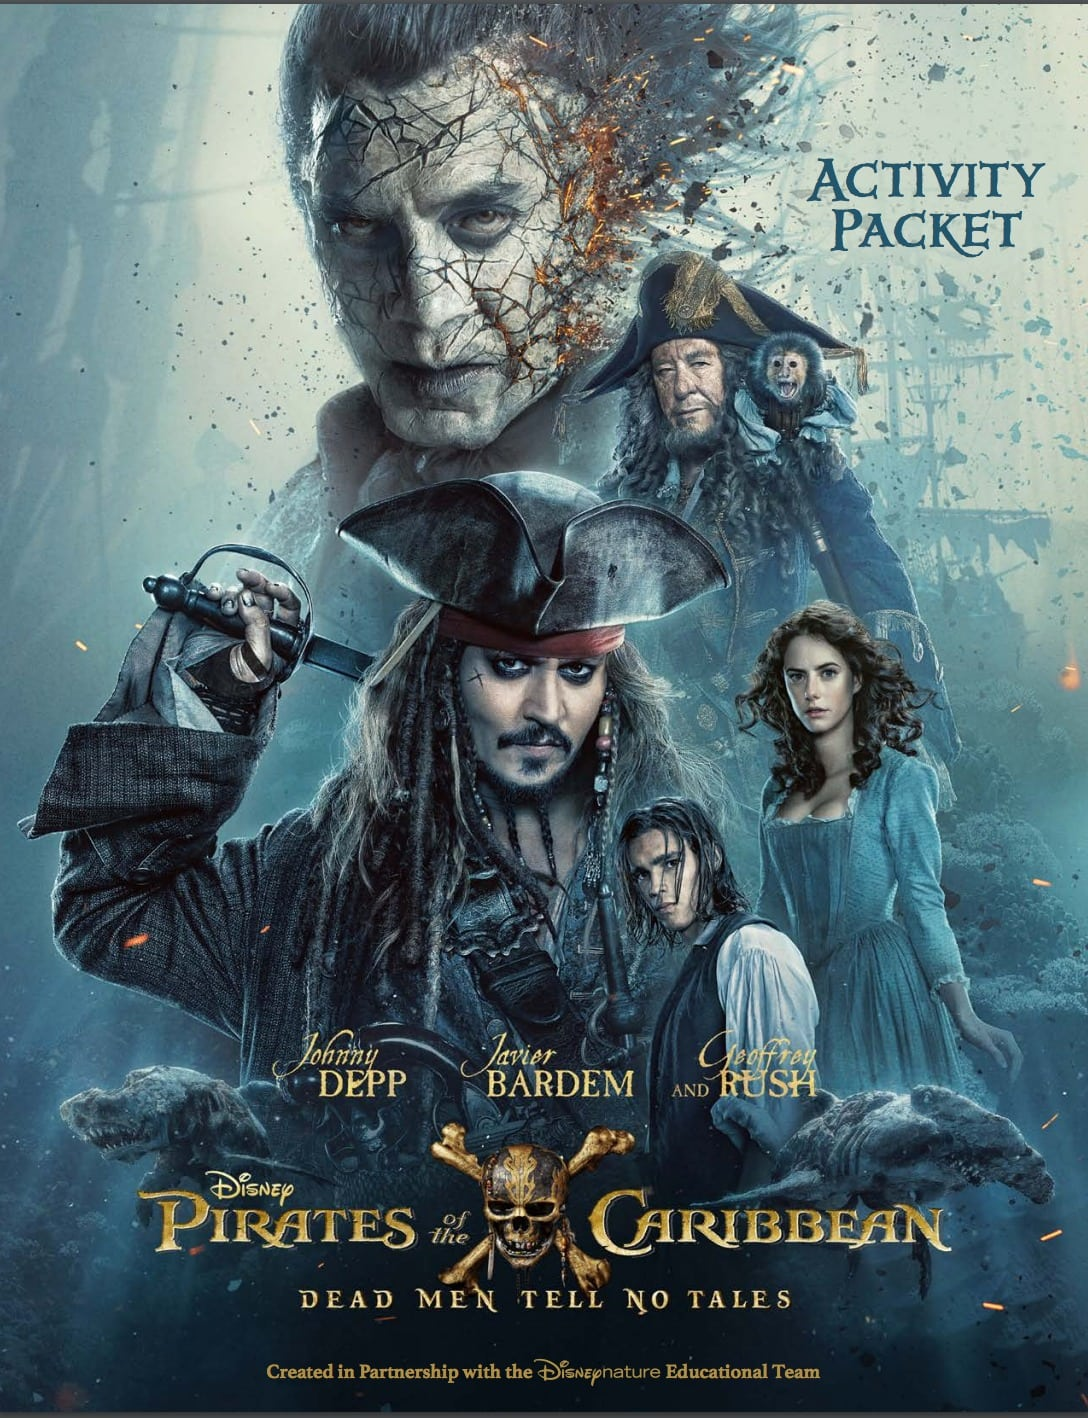 Check out this really fun Pirates of the Caribbean activity packet filled with games, puzzles, mazes, etc. English (and Spanish available)